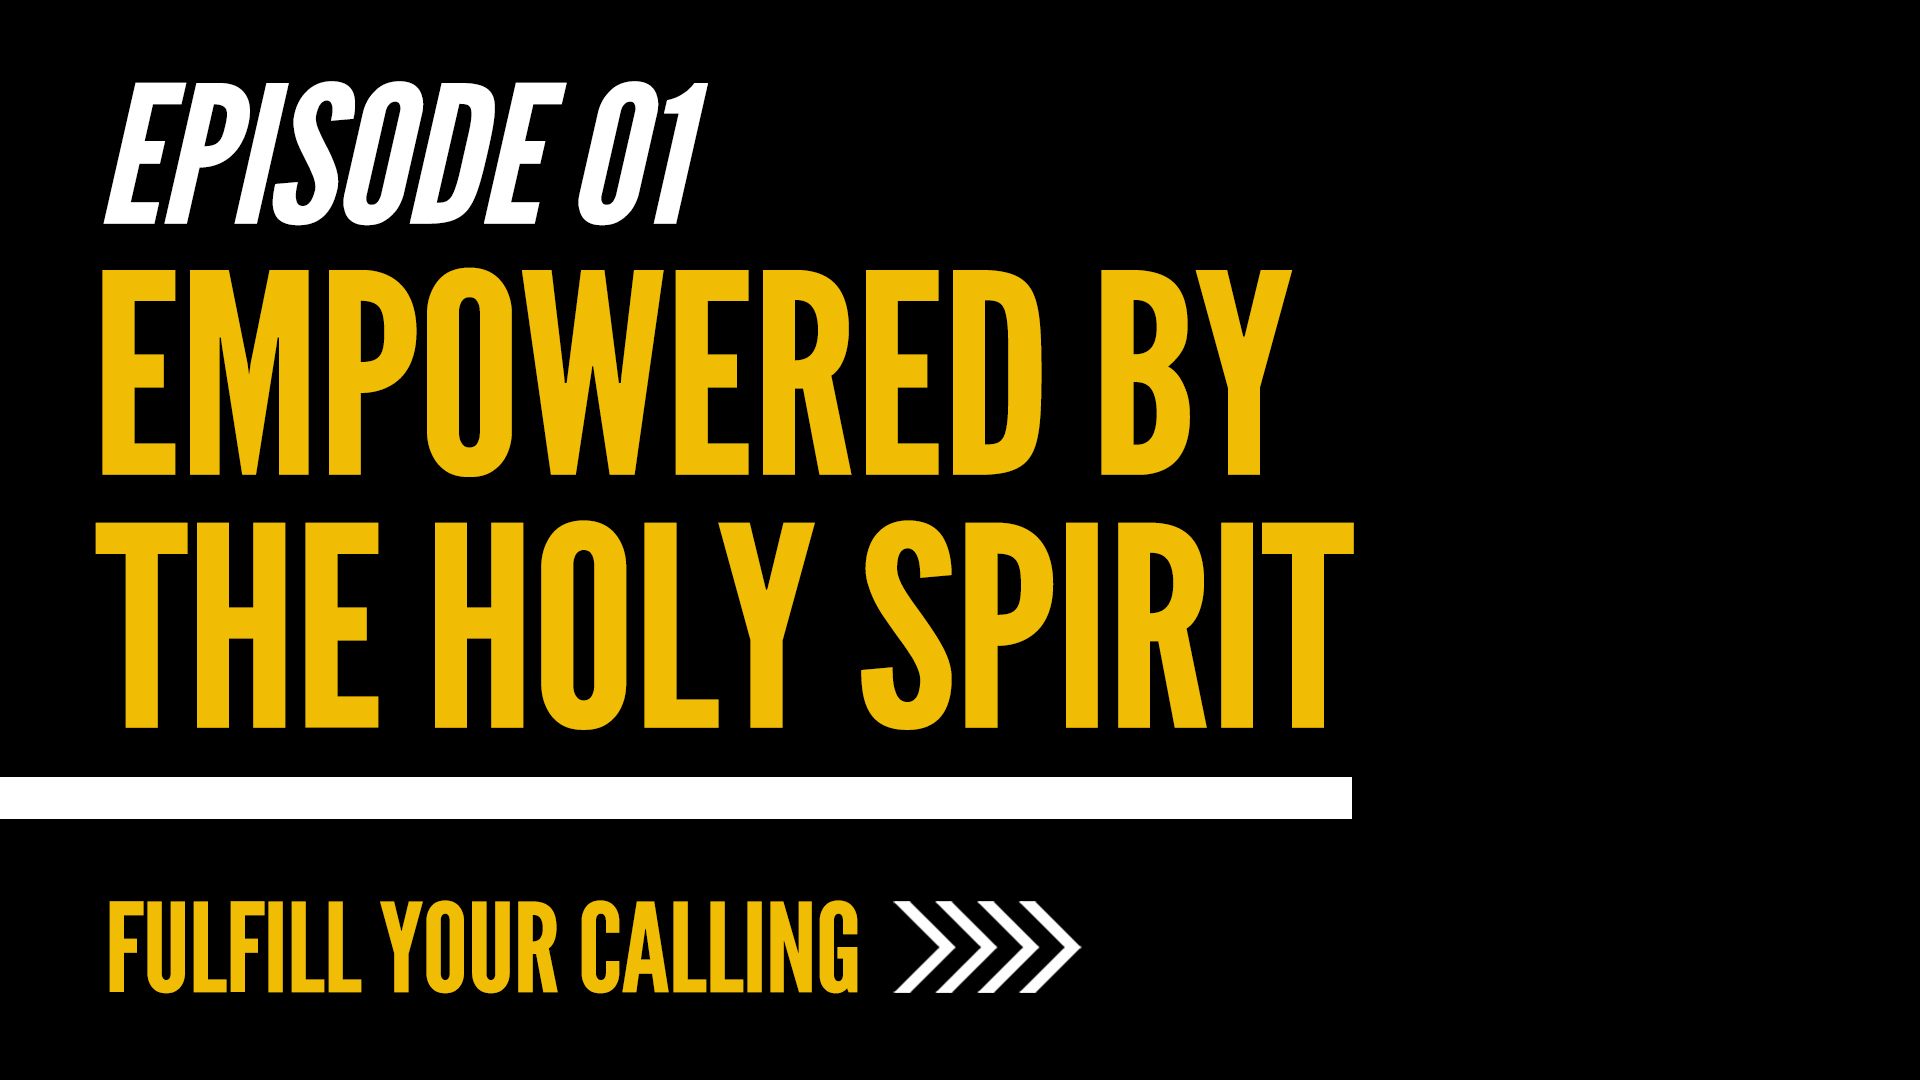 How to Fulfill Your Calling Video Series - Episode 1 (Empowered by the Holy Spirit) with David Steele